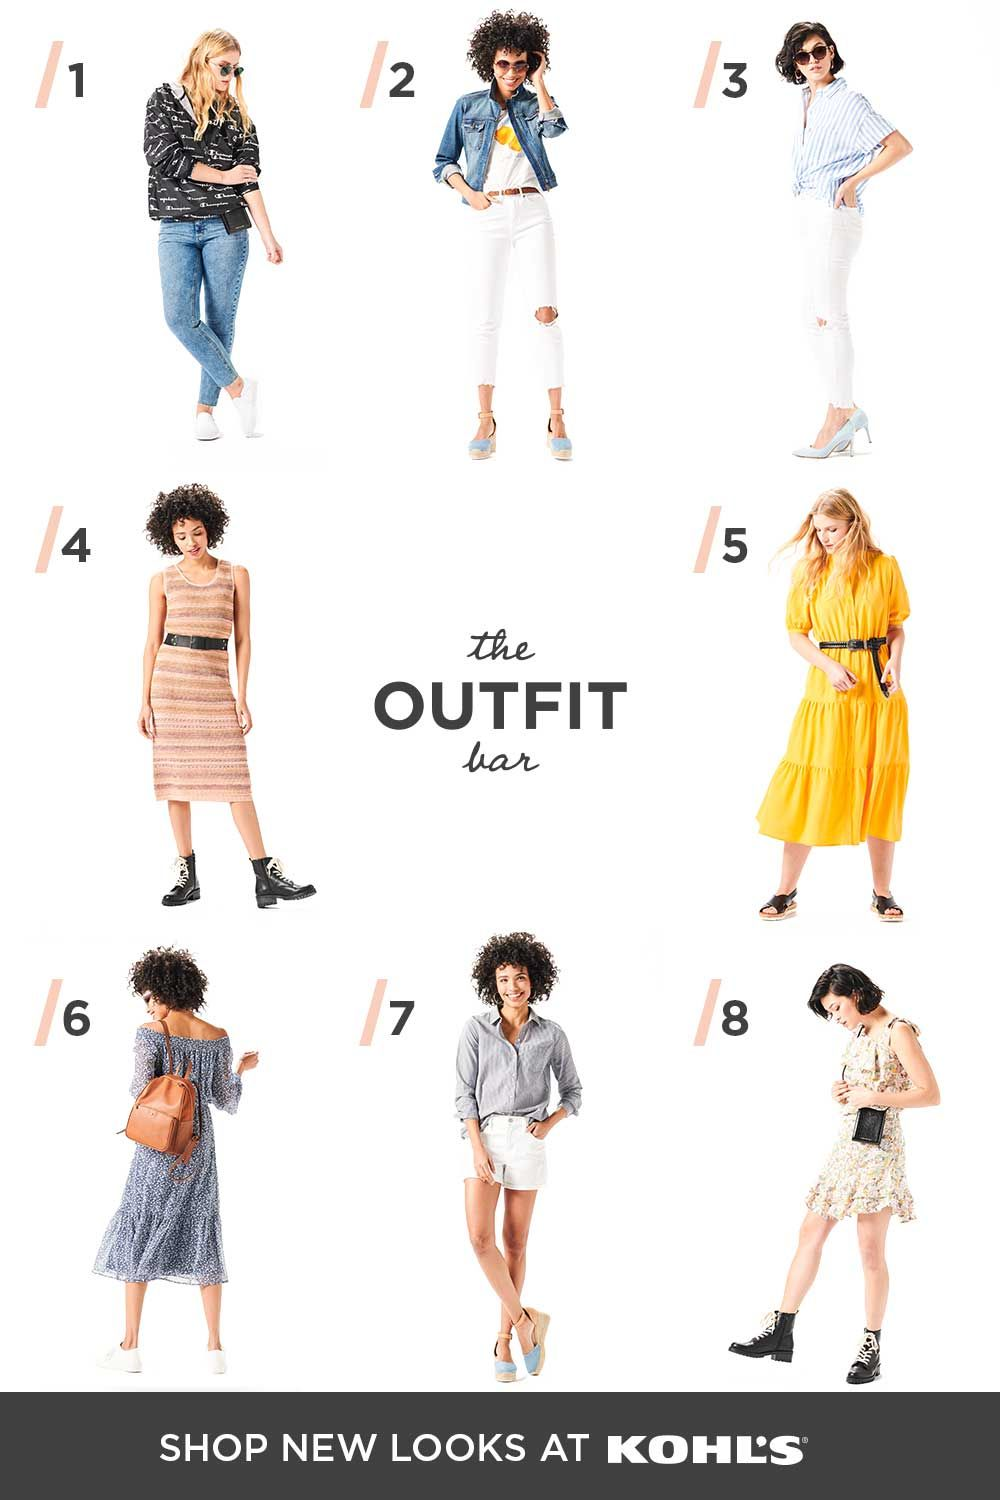 New looks from The Outfit Bar at Kohl's.